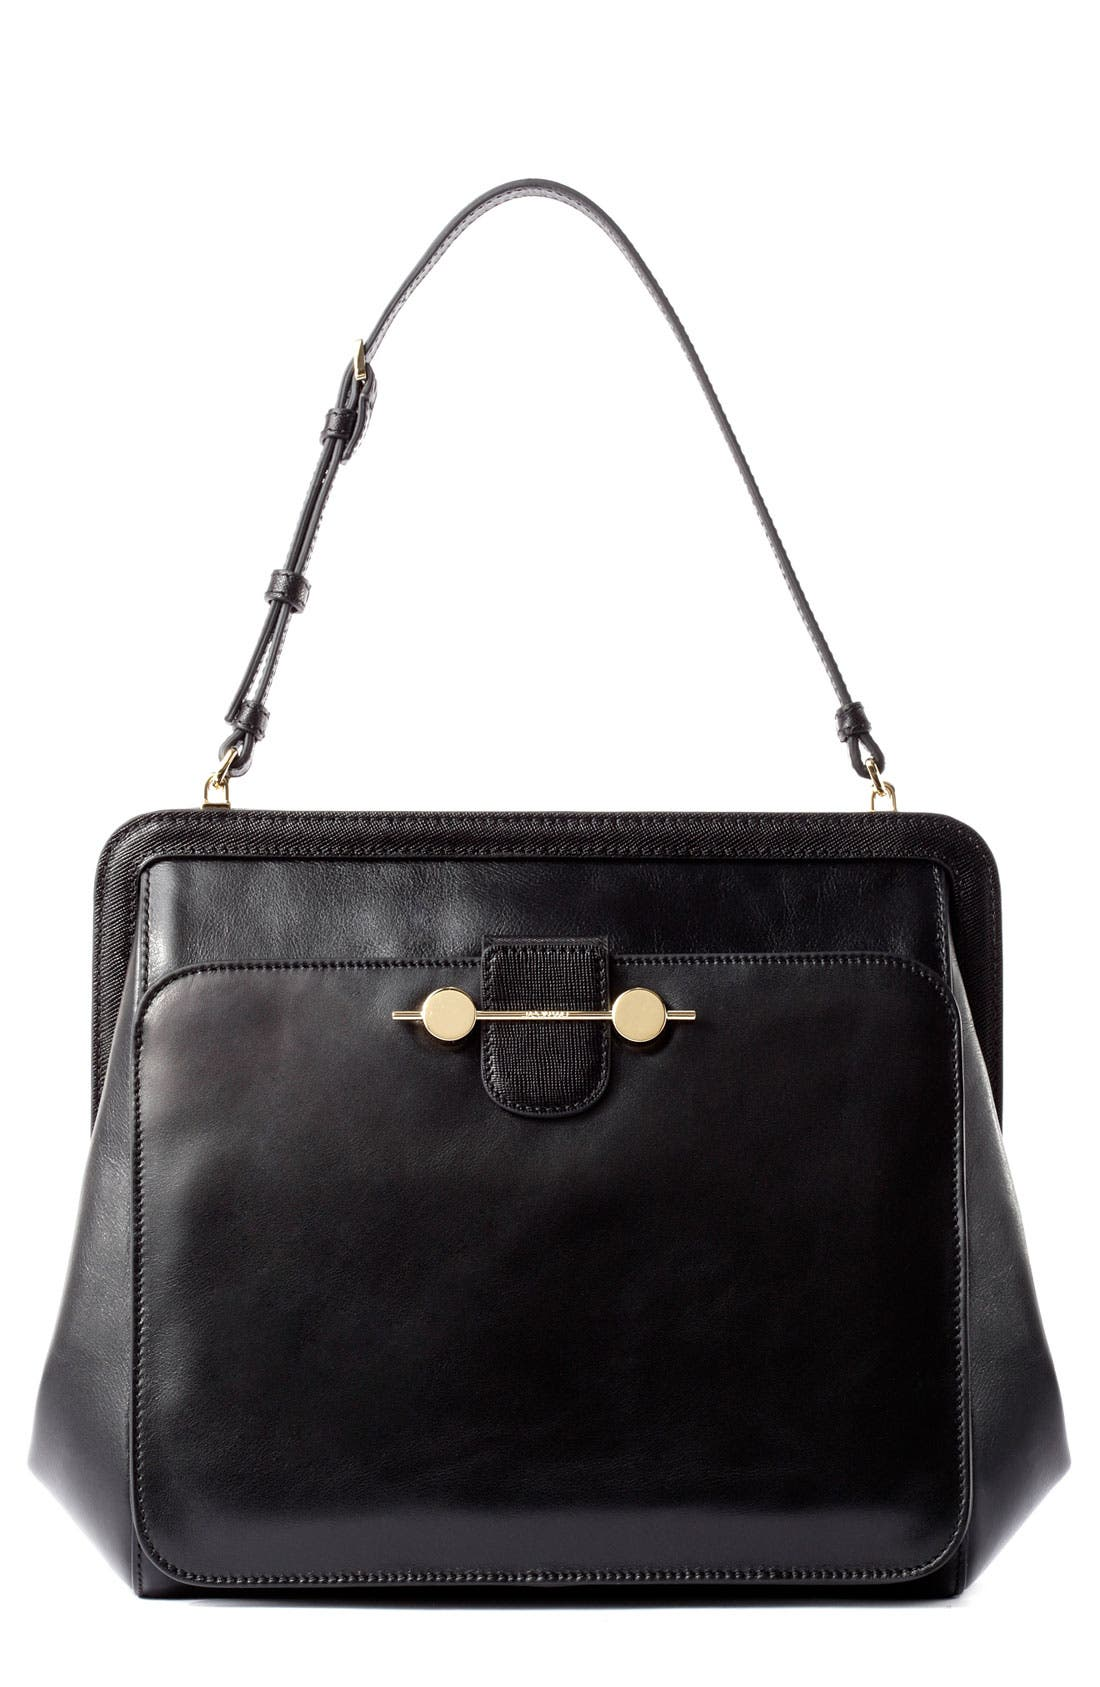 Main Image - Jason Wu 'Daphne' Leather Satchel